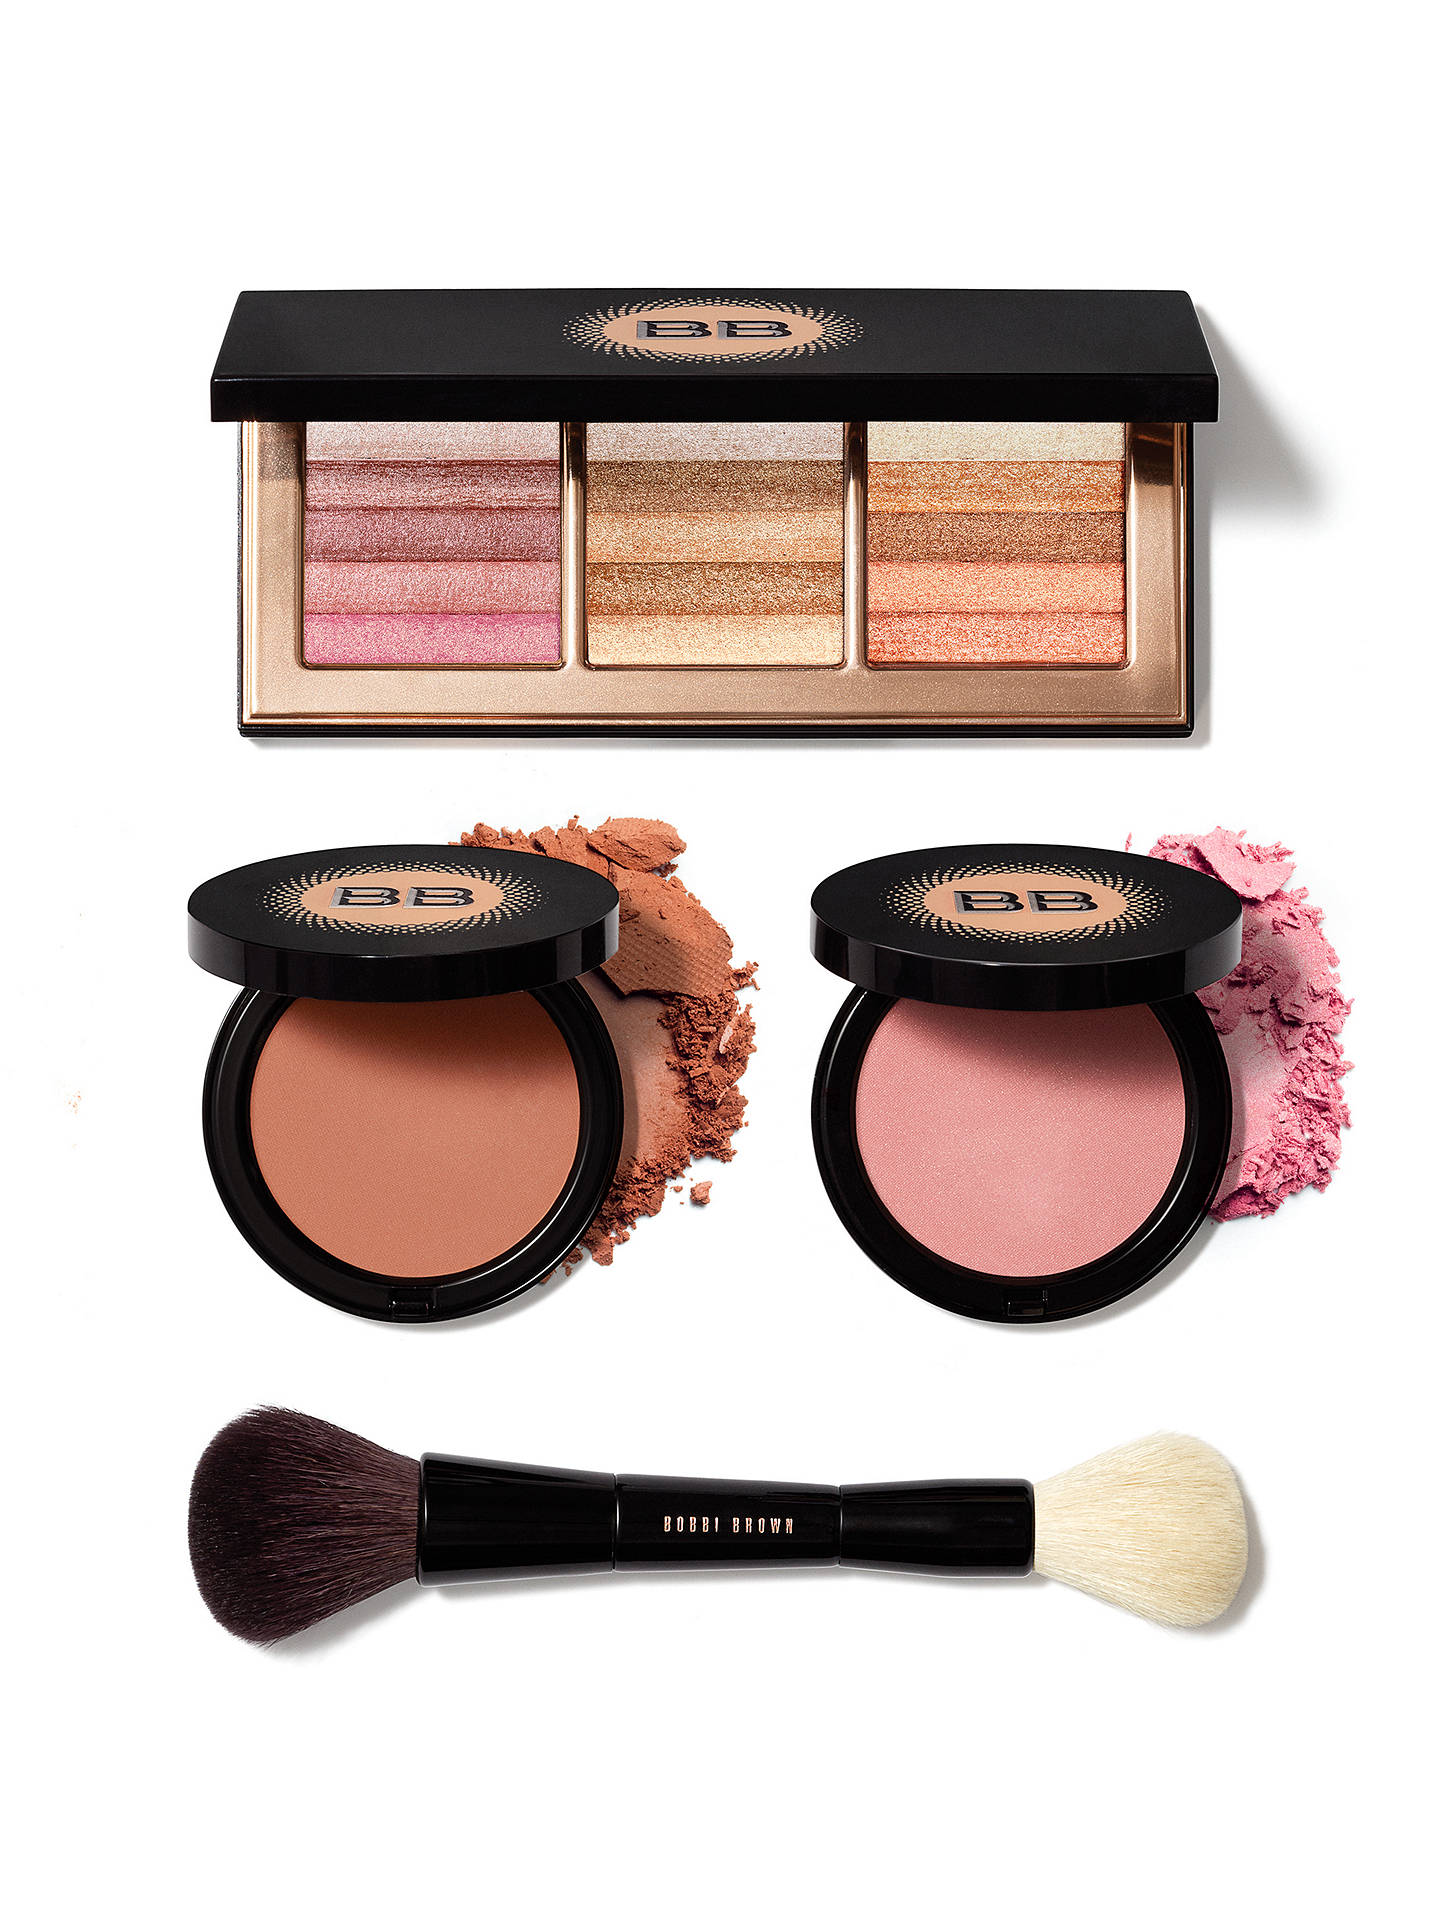 BuyBobbi Brown Bronzing Powder, Limited Edition, Golden Online at johnlewis.com